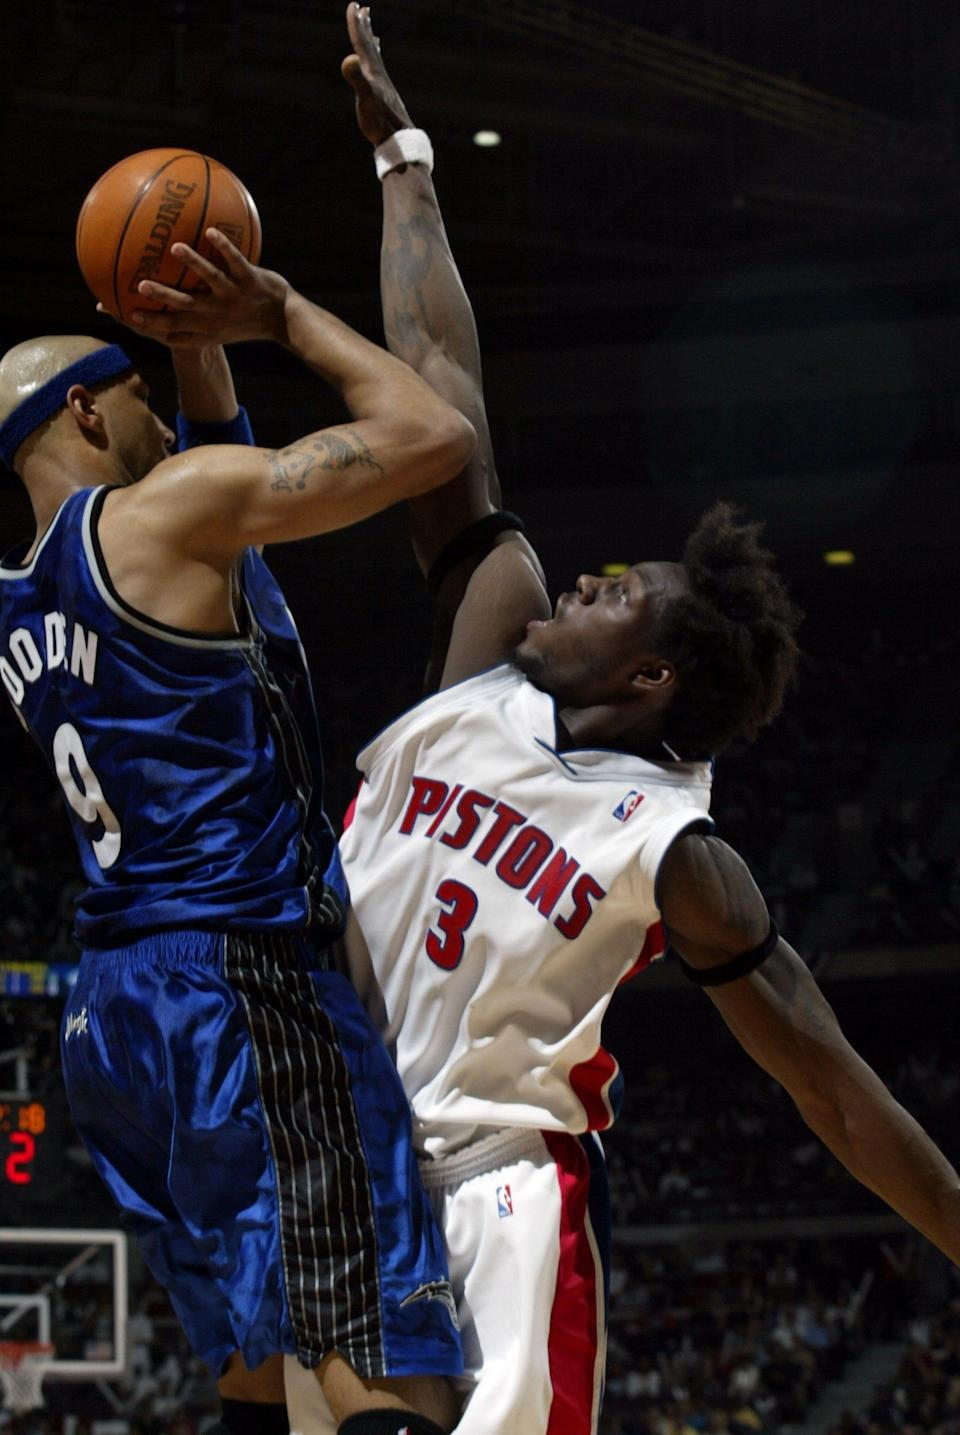 Ben Wallace forces a miss by Orlando's Drew Gooden at the Palace, April 20, 2003 in the playoffs.